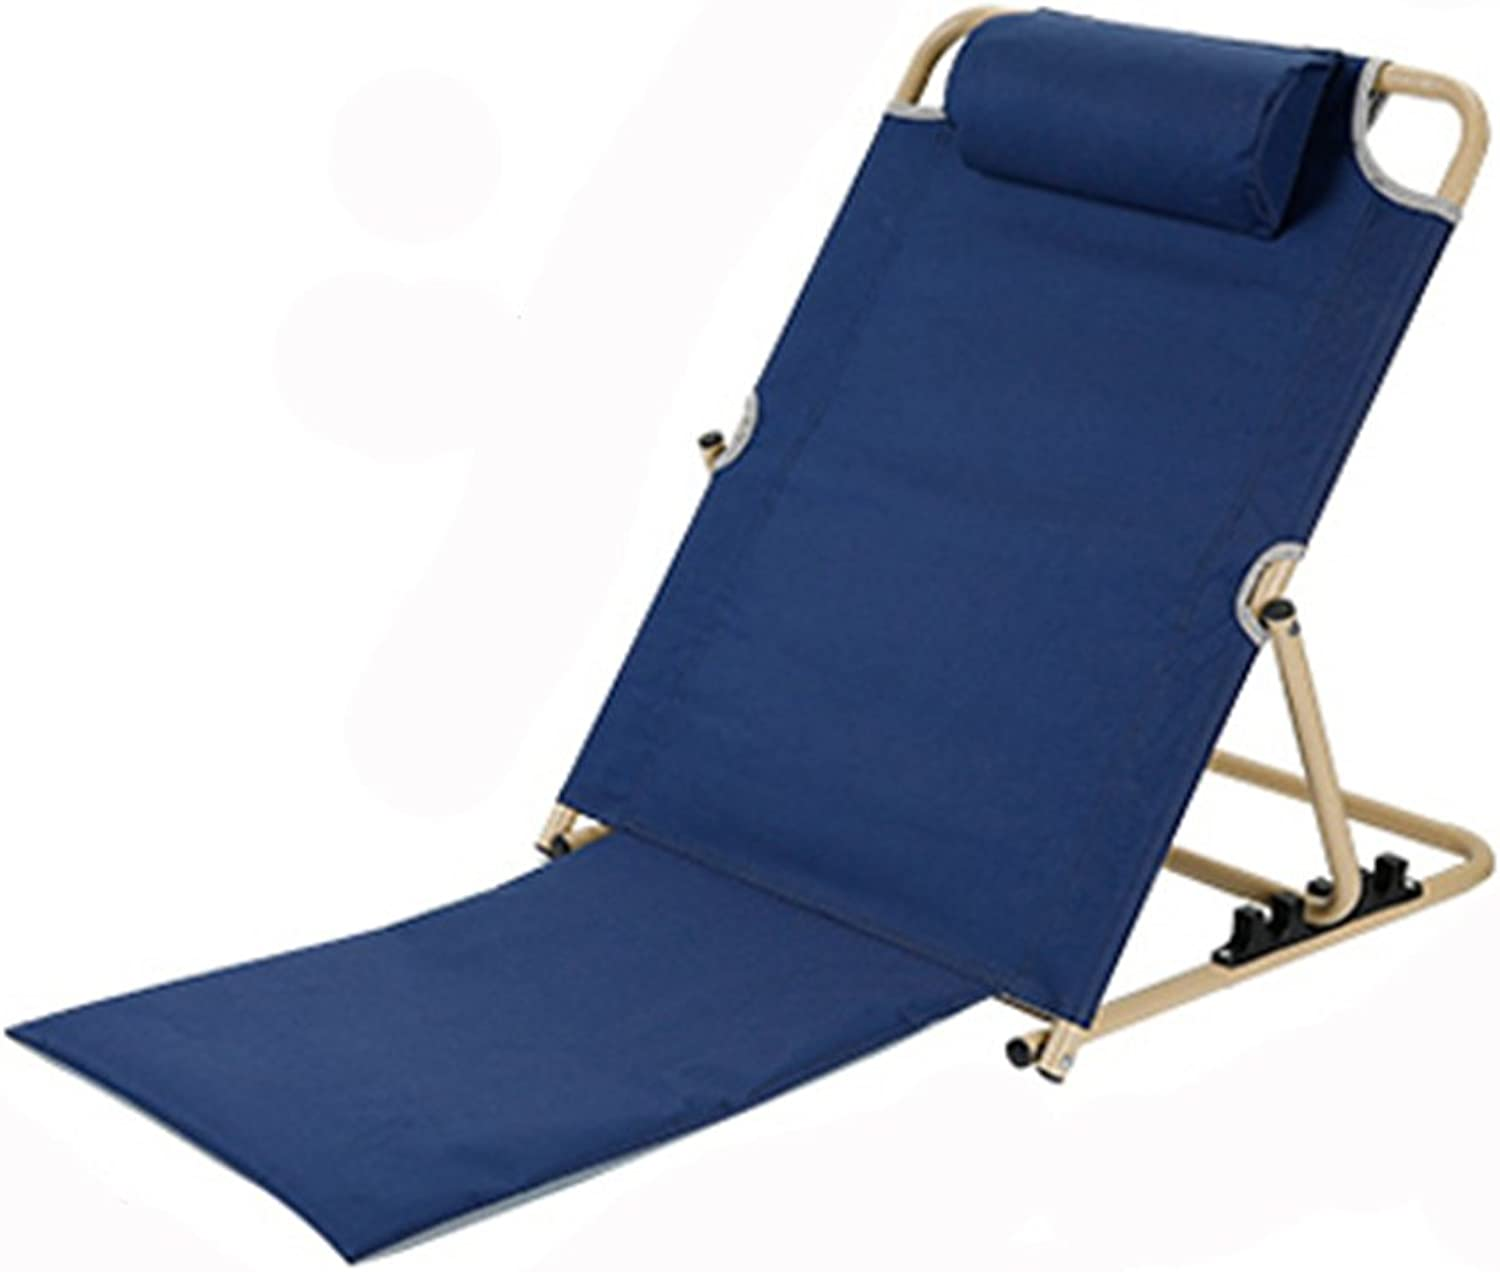 XRXY Multifunction Bed Dorm Room Folding Chair Simple Backrest Chair Outdoor Portable Recliner Living Room Bedroom Floor Chair Garden Lounge Chair